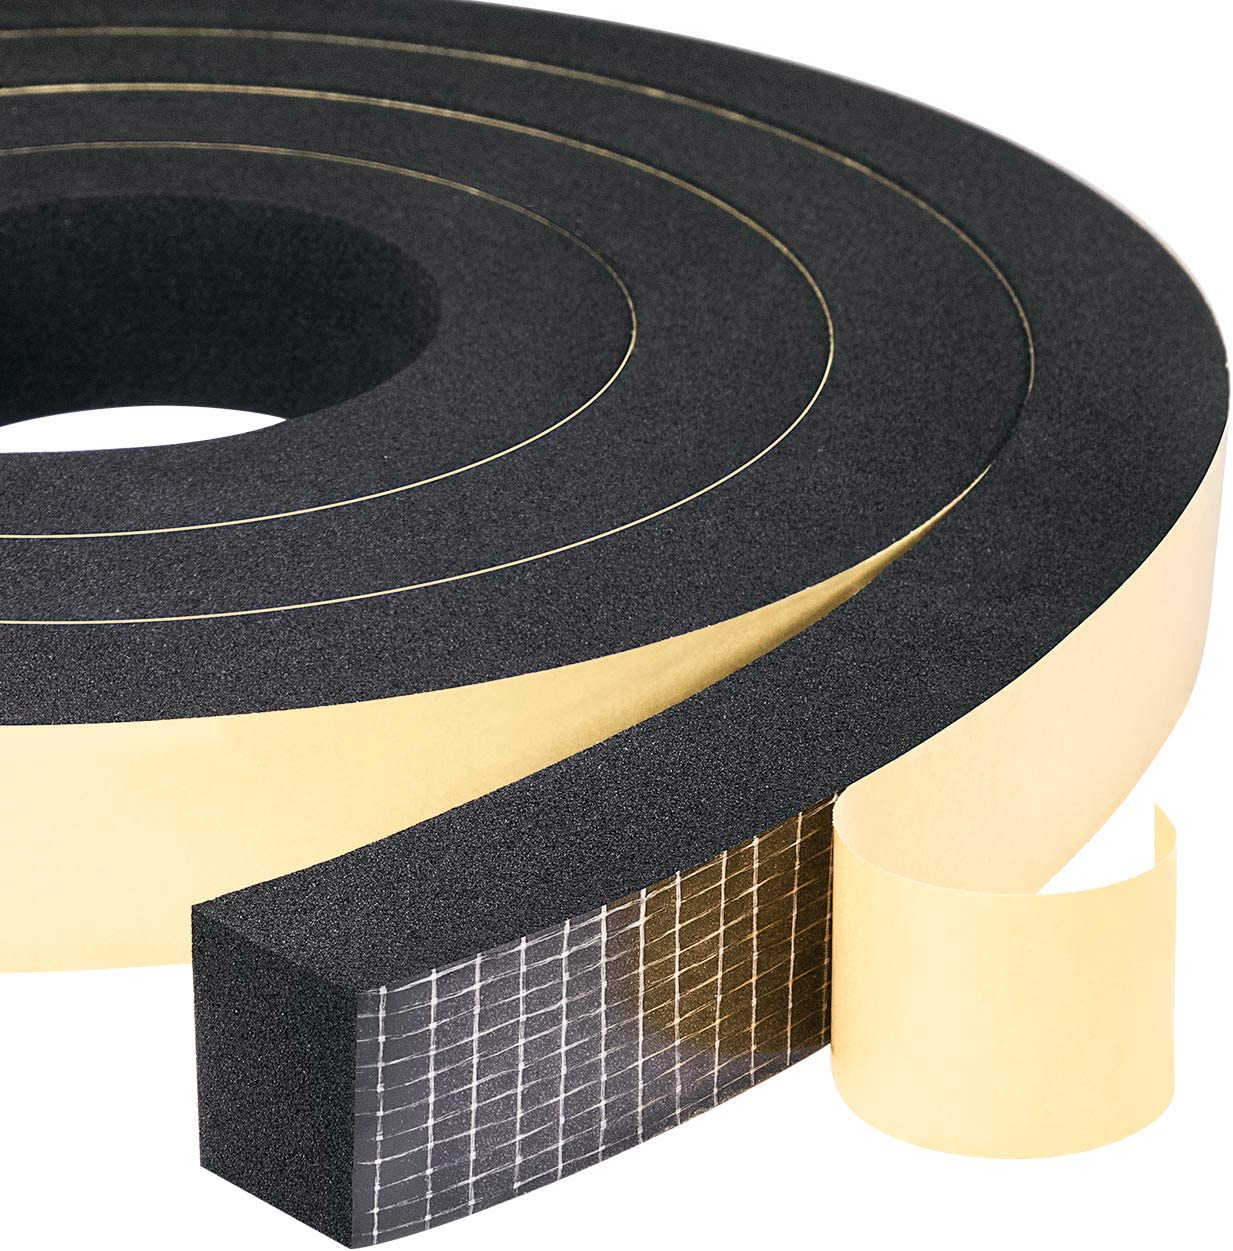 Anti-Collision Weather Stripping for Door and Window High Density Sponge Rubber Foam Tape Strip for Insulation Gap Blocker 1//3 Inch Thick X 3//4 Inch Wide Anti-Vibration Total 32 Feet Long 2 Pac